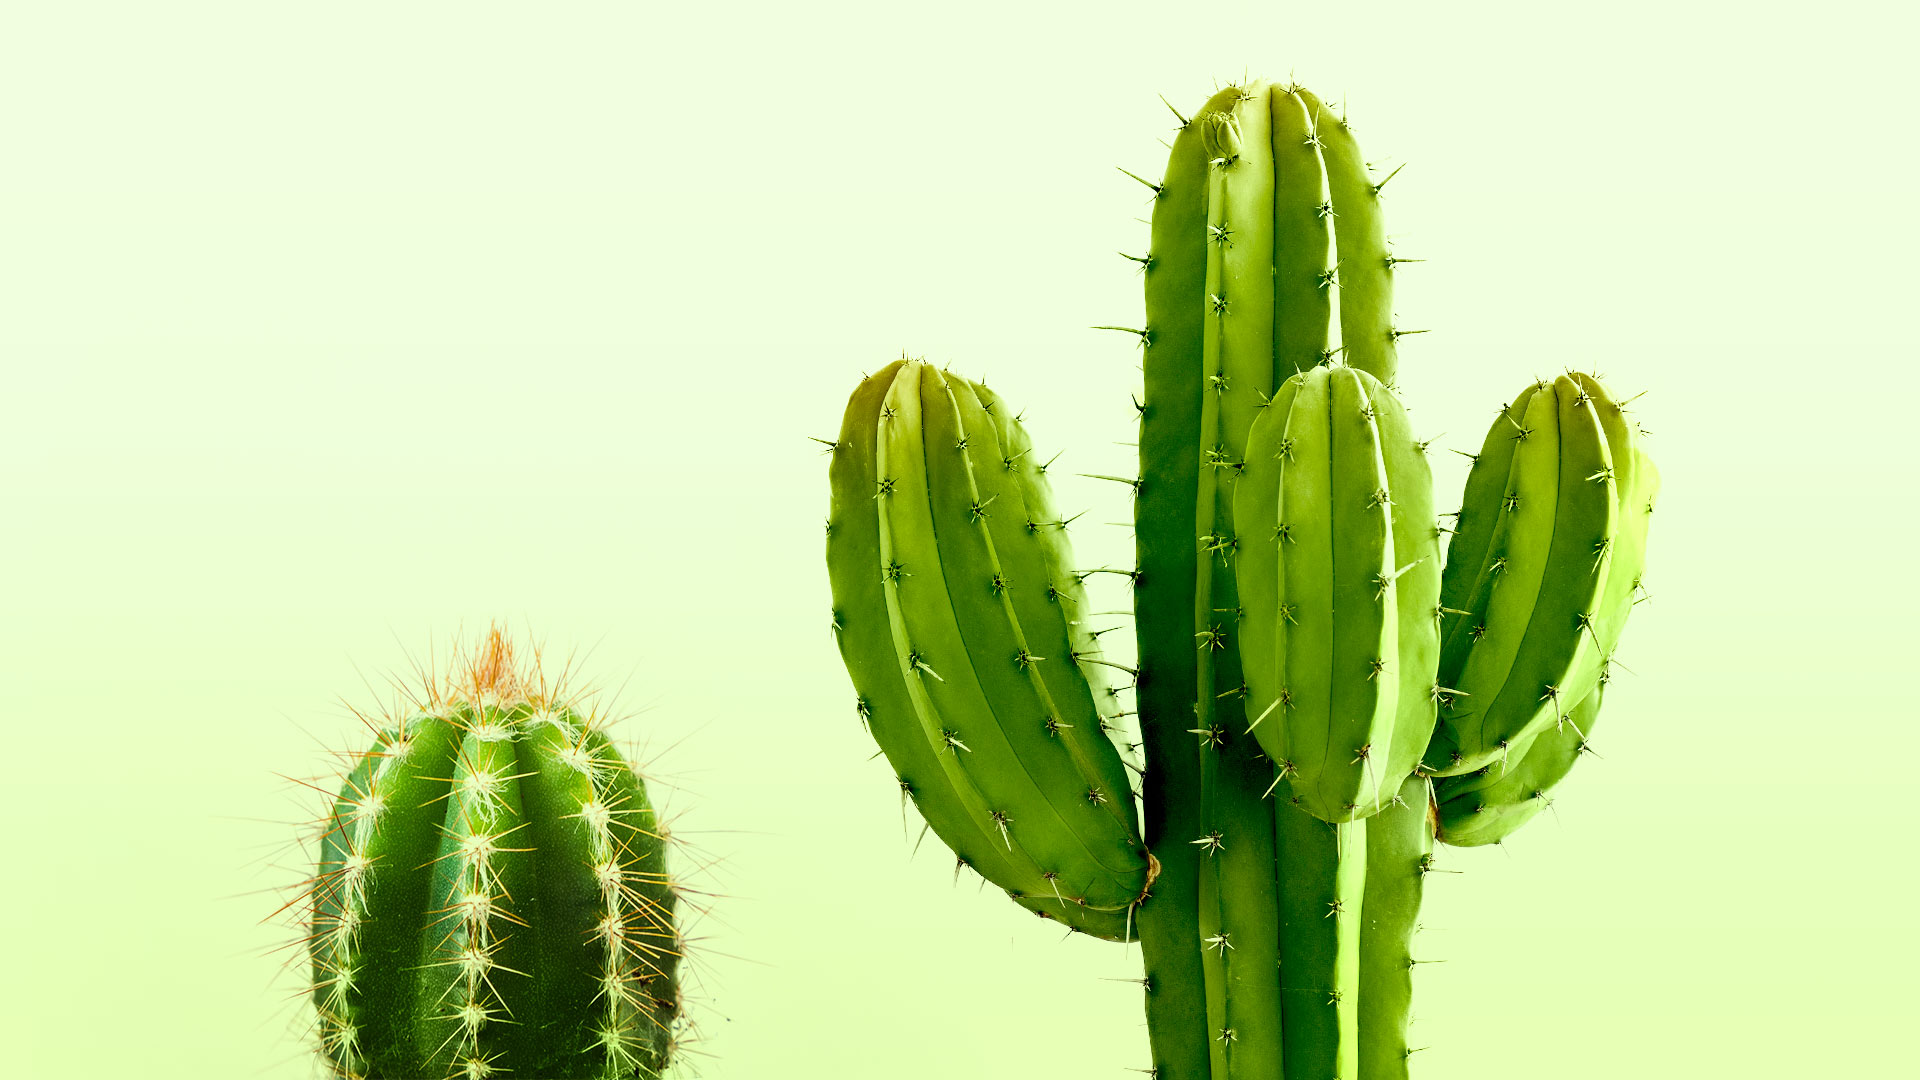 Two cactuses sit side by side. One is small and simple, and the other is tall with many branches.